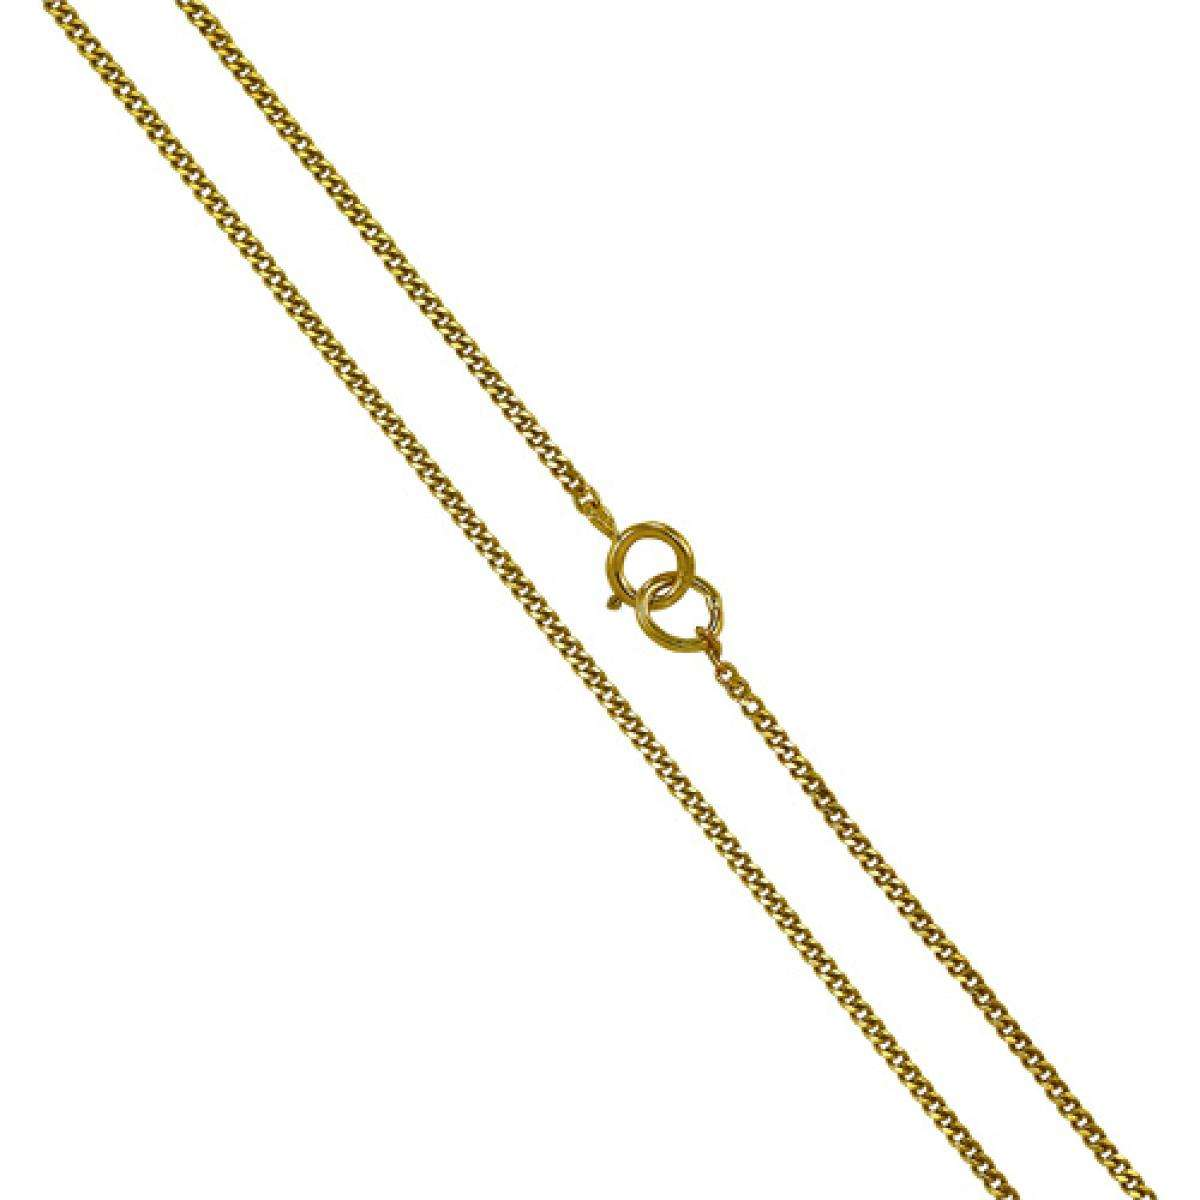 Alterative image for 9ct Yellow Gold Diamond Cut Curb Chain 16 - 20 Inches